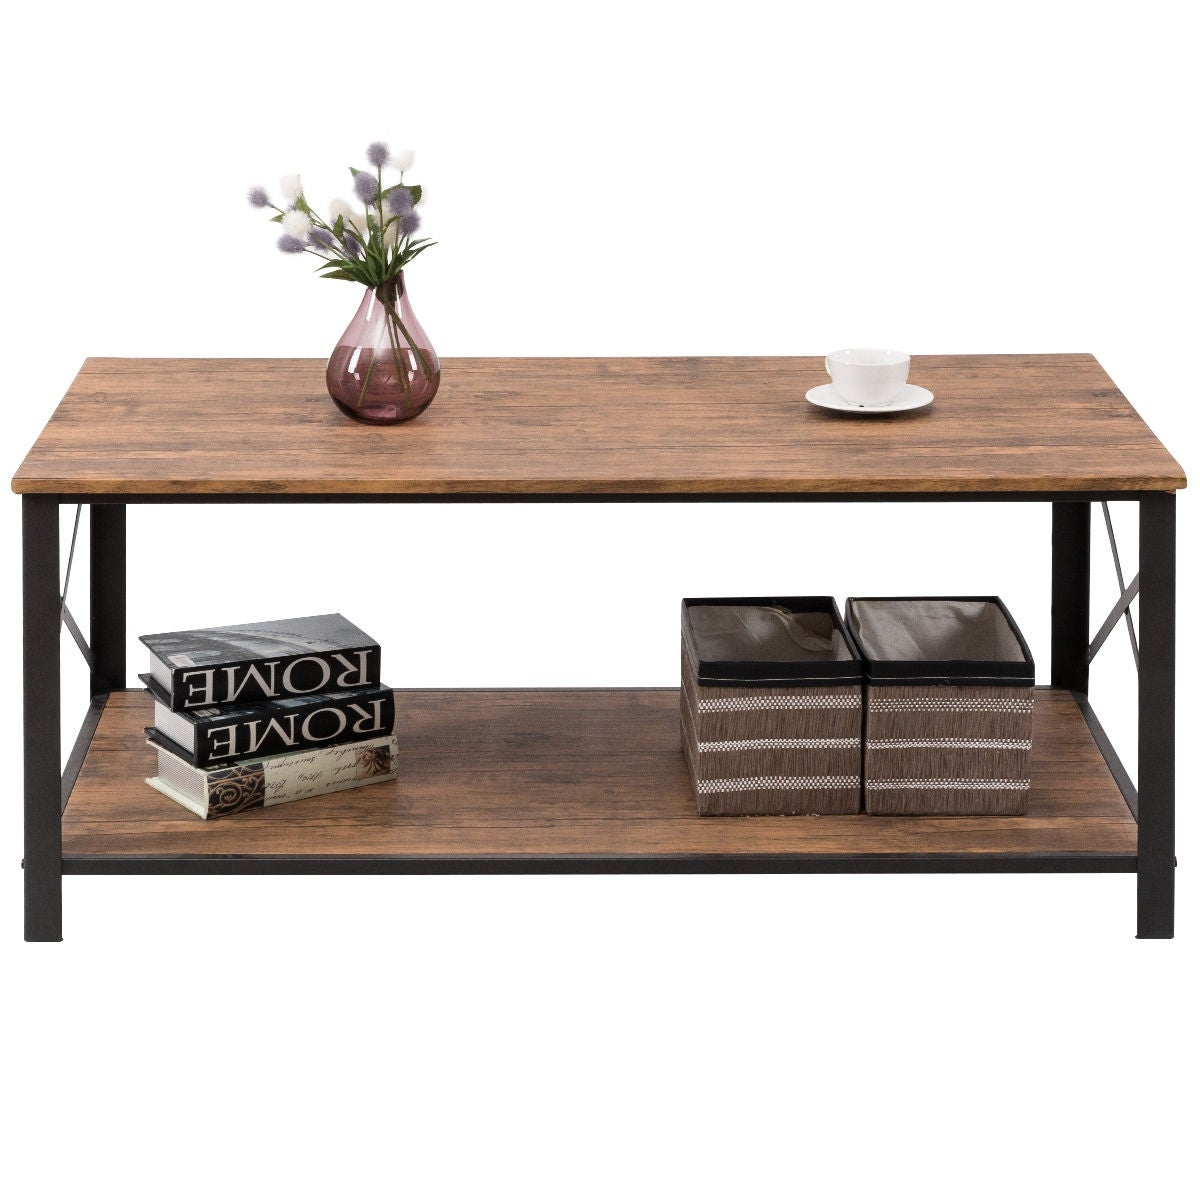 Shop Costway Wood Coffee Table Cocktail Side Accent Table Metal Frame W/  Storage Shelf   Free Shipping Today   Overstock.com   17950514